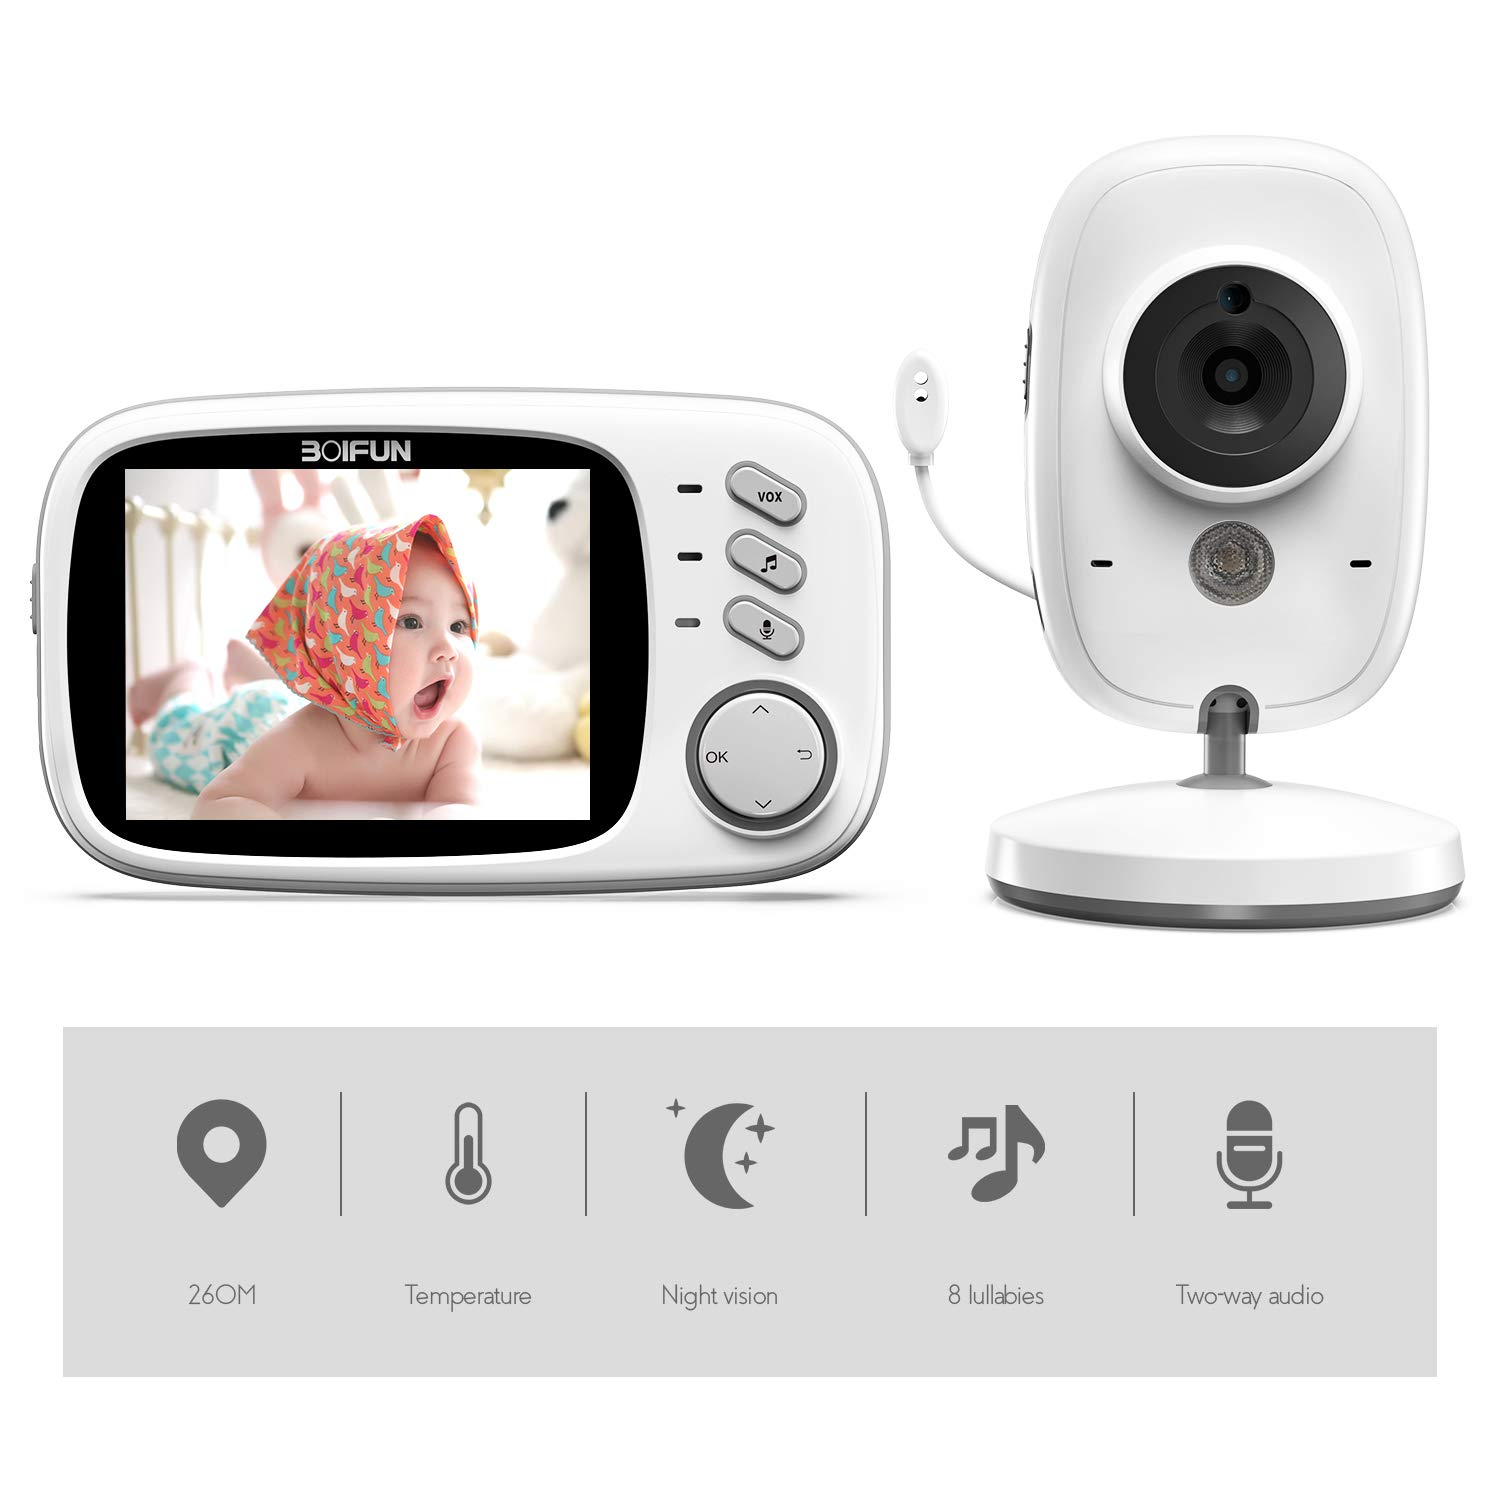 Baby Monitor, BOIFUN 3.2'' Baby Video Monitor with Camera and Audio LCD Screen 750mAh Rechargeable Battery Support VOX Night Vision Temperature Monitoring Two-Way Talk 8 lullabies for Baby/Elder/Pet by BOIFUN